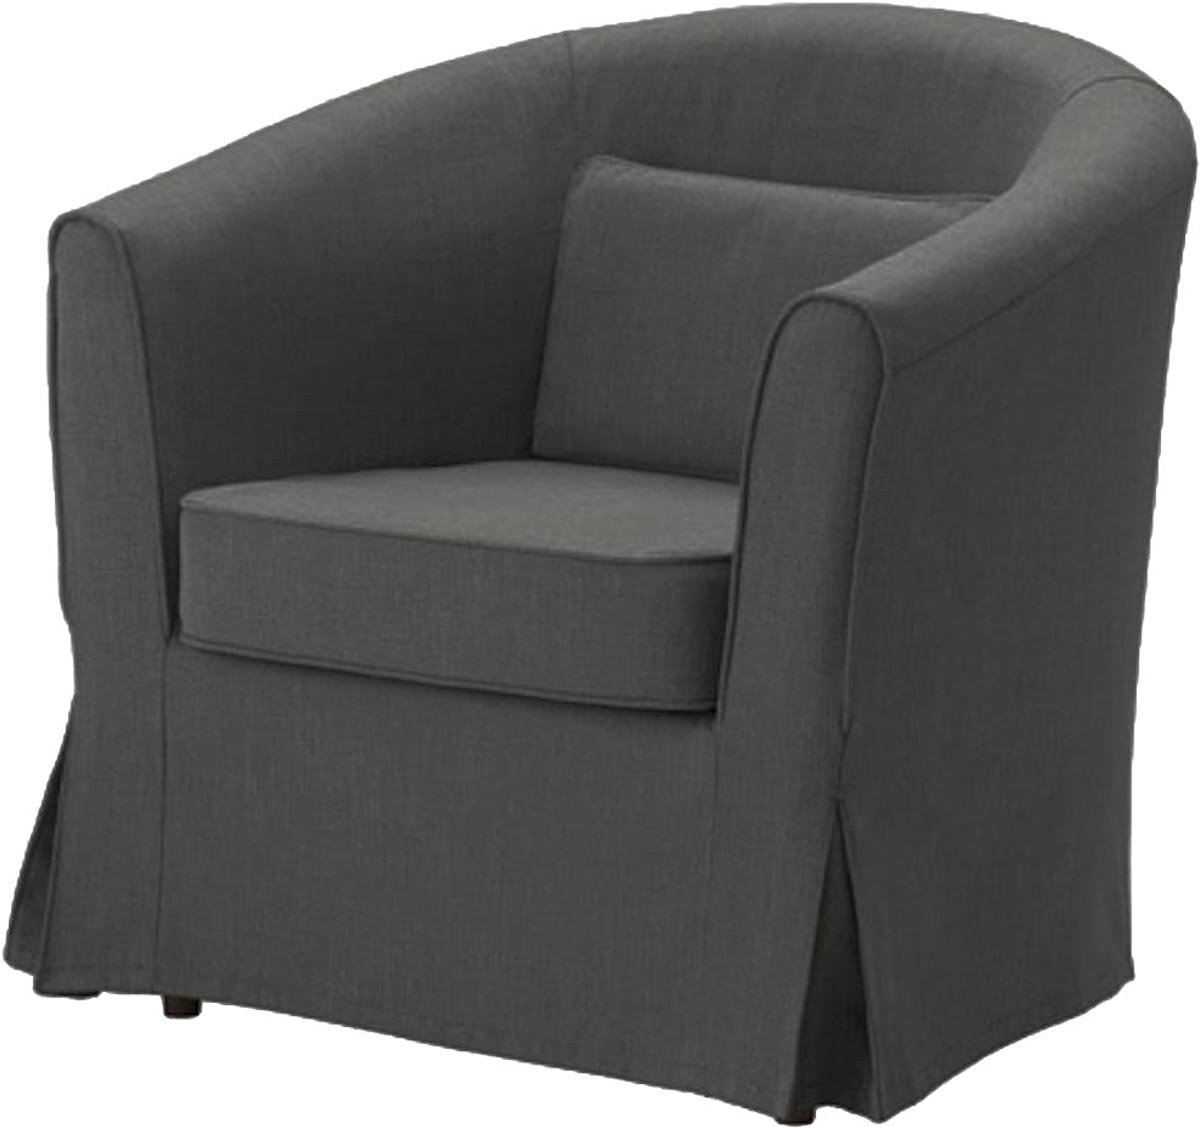 Cheap Ikea Swing Chair Find Ikea Swing Chair Deals On Line At